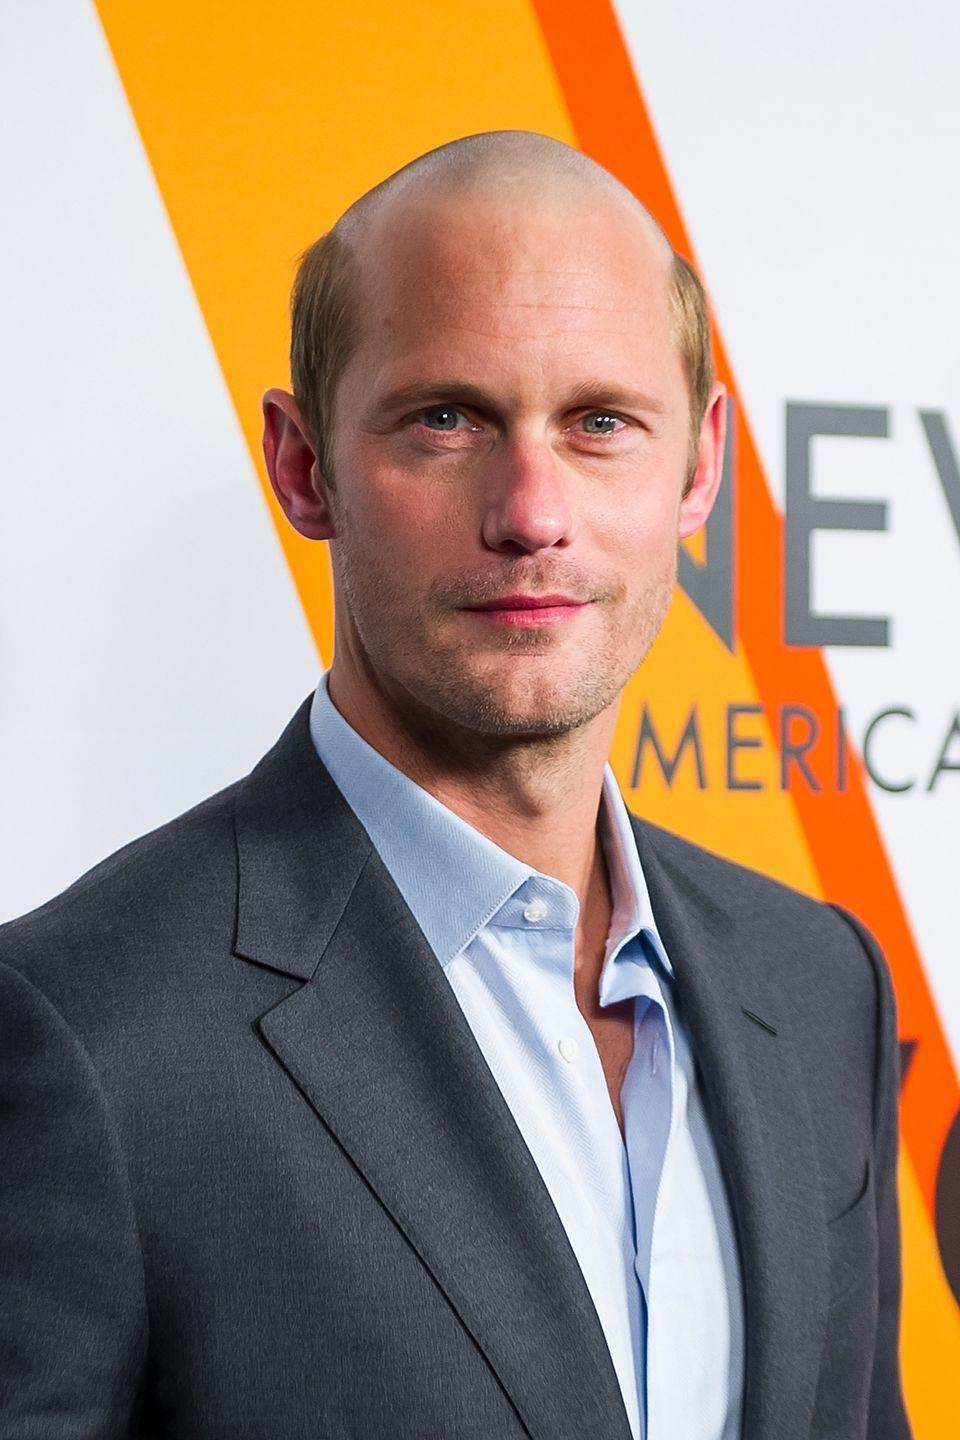 <p>People were perplexed, to say the least, when Skarsgård walked the red carpet with a partially-bald, Bart Simpson-esque look in 2018. Thankfully, the actor was merely preparing for his role in <em>The Hummingbird Project. </em></p>